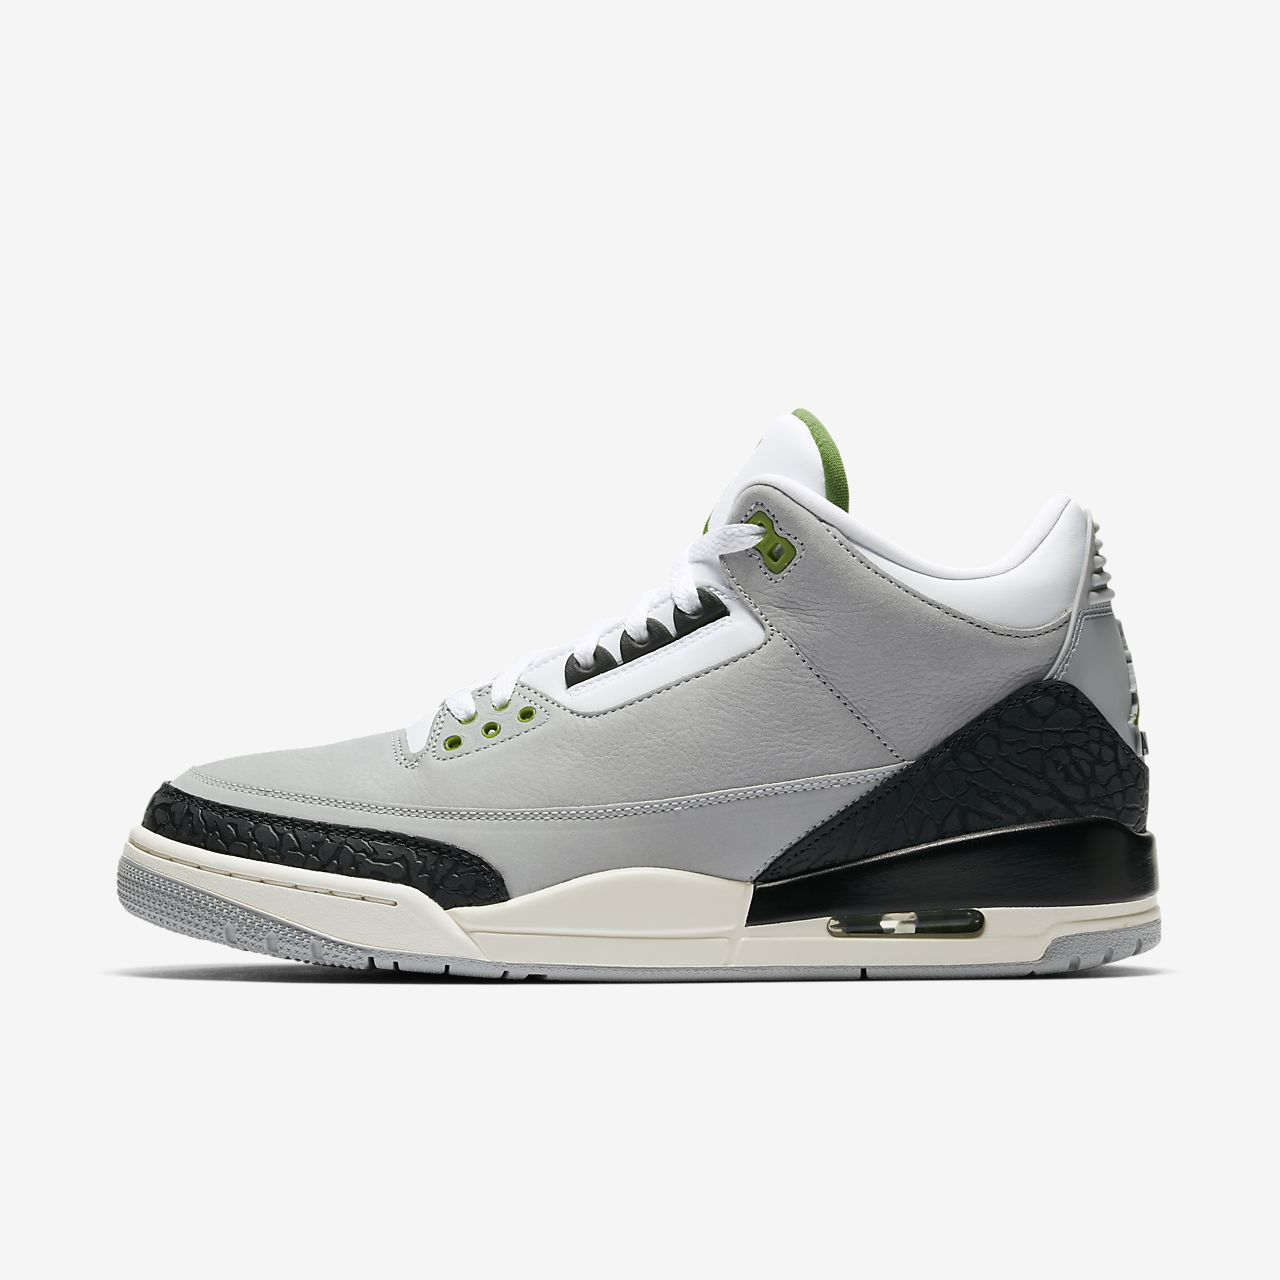 55b1112563f4d3 Air Jordan 3 Retro Men s Shoe. Nike.com GB